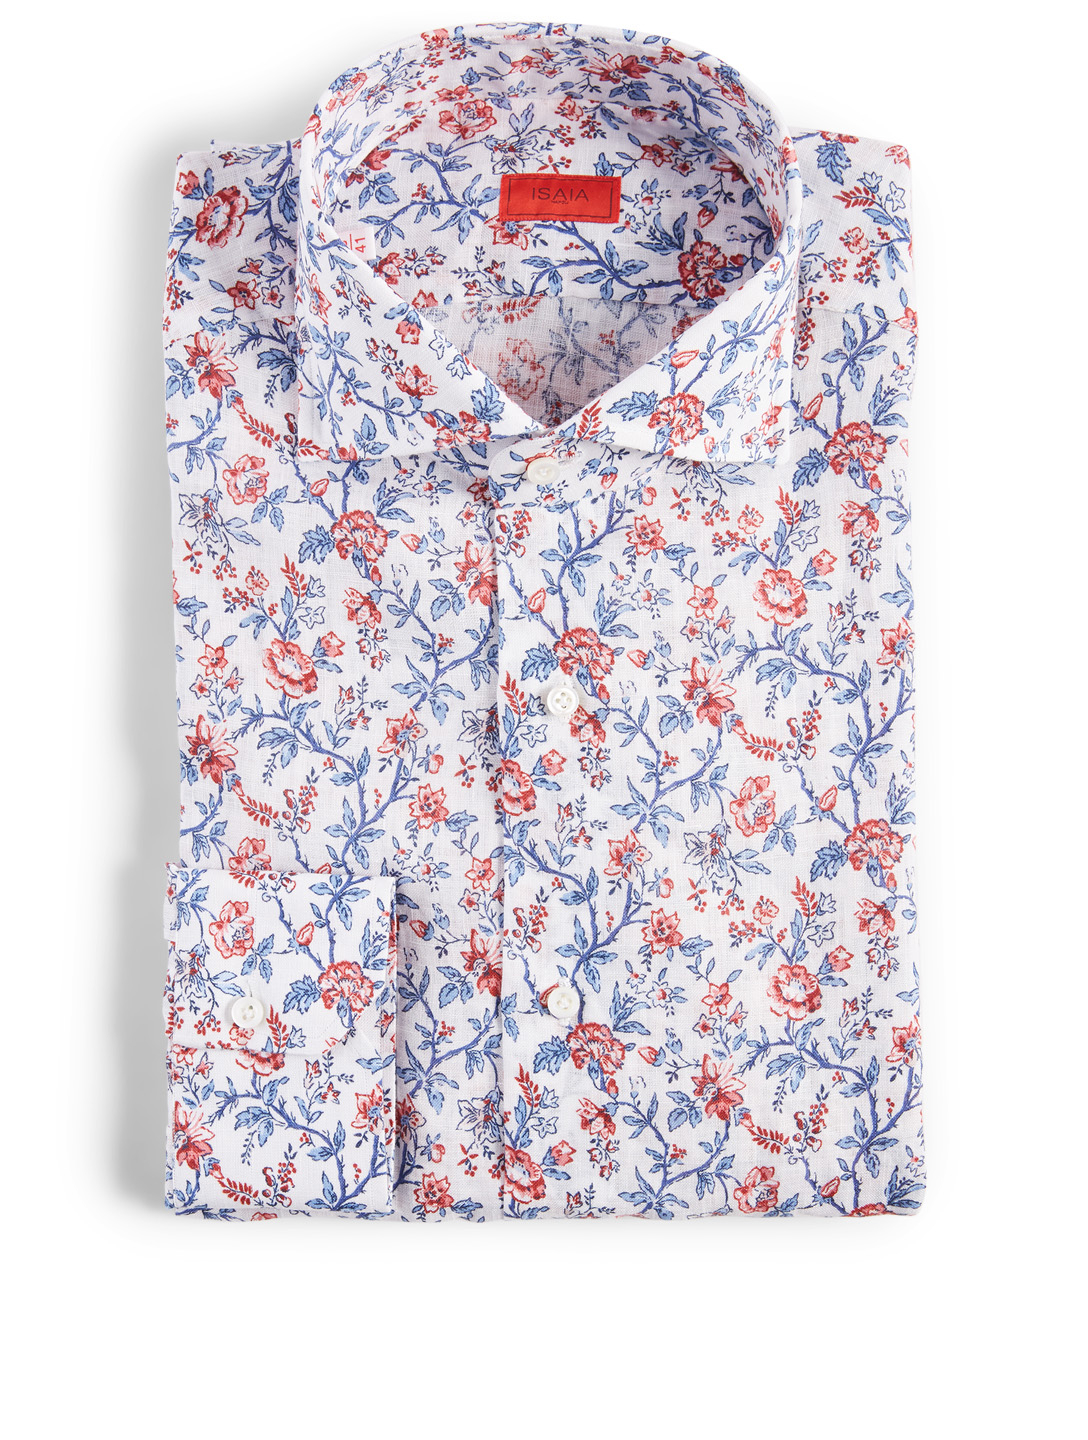 ISAIA Cotton And Linen Dress Shirt In Floral Print Men's Multi